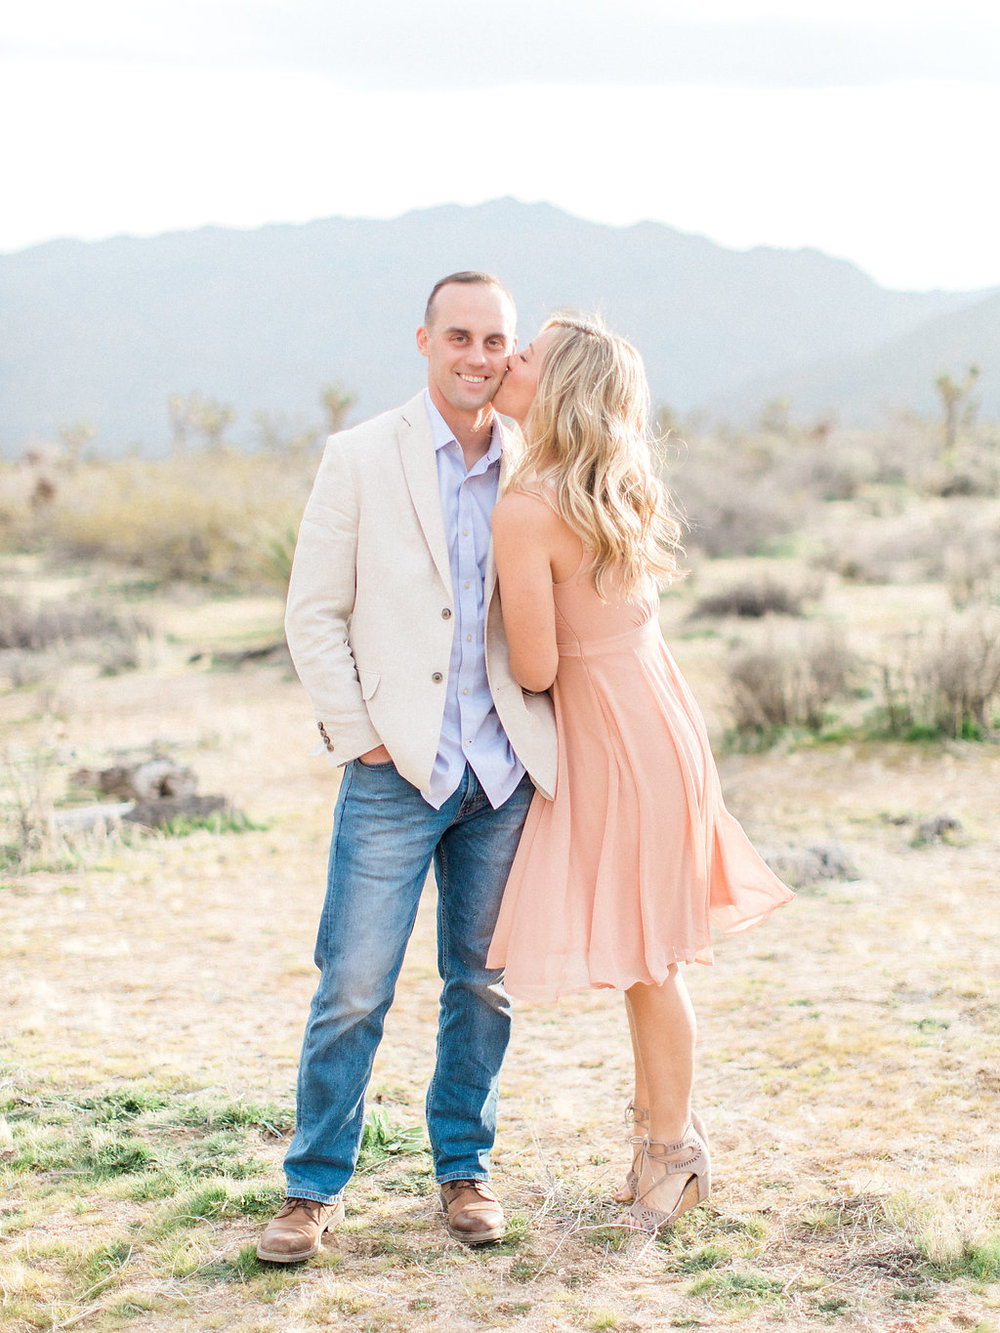 Joshua Tree Engagement Session | What to Wear for Pictures | Southern California Wedding Photographer | Mastin Labs Fuji Film | Fine Art Photographer | Desert Shoot | Kiss on Cheek Shot.jpg